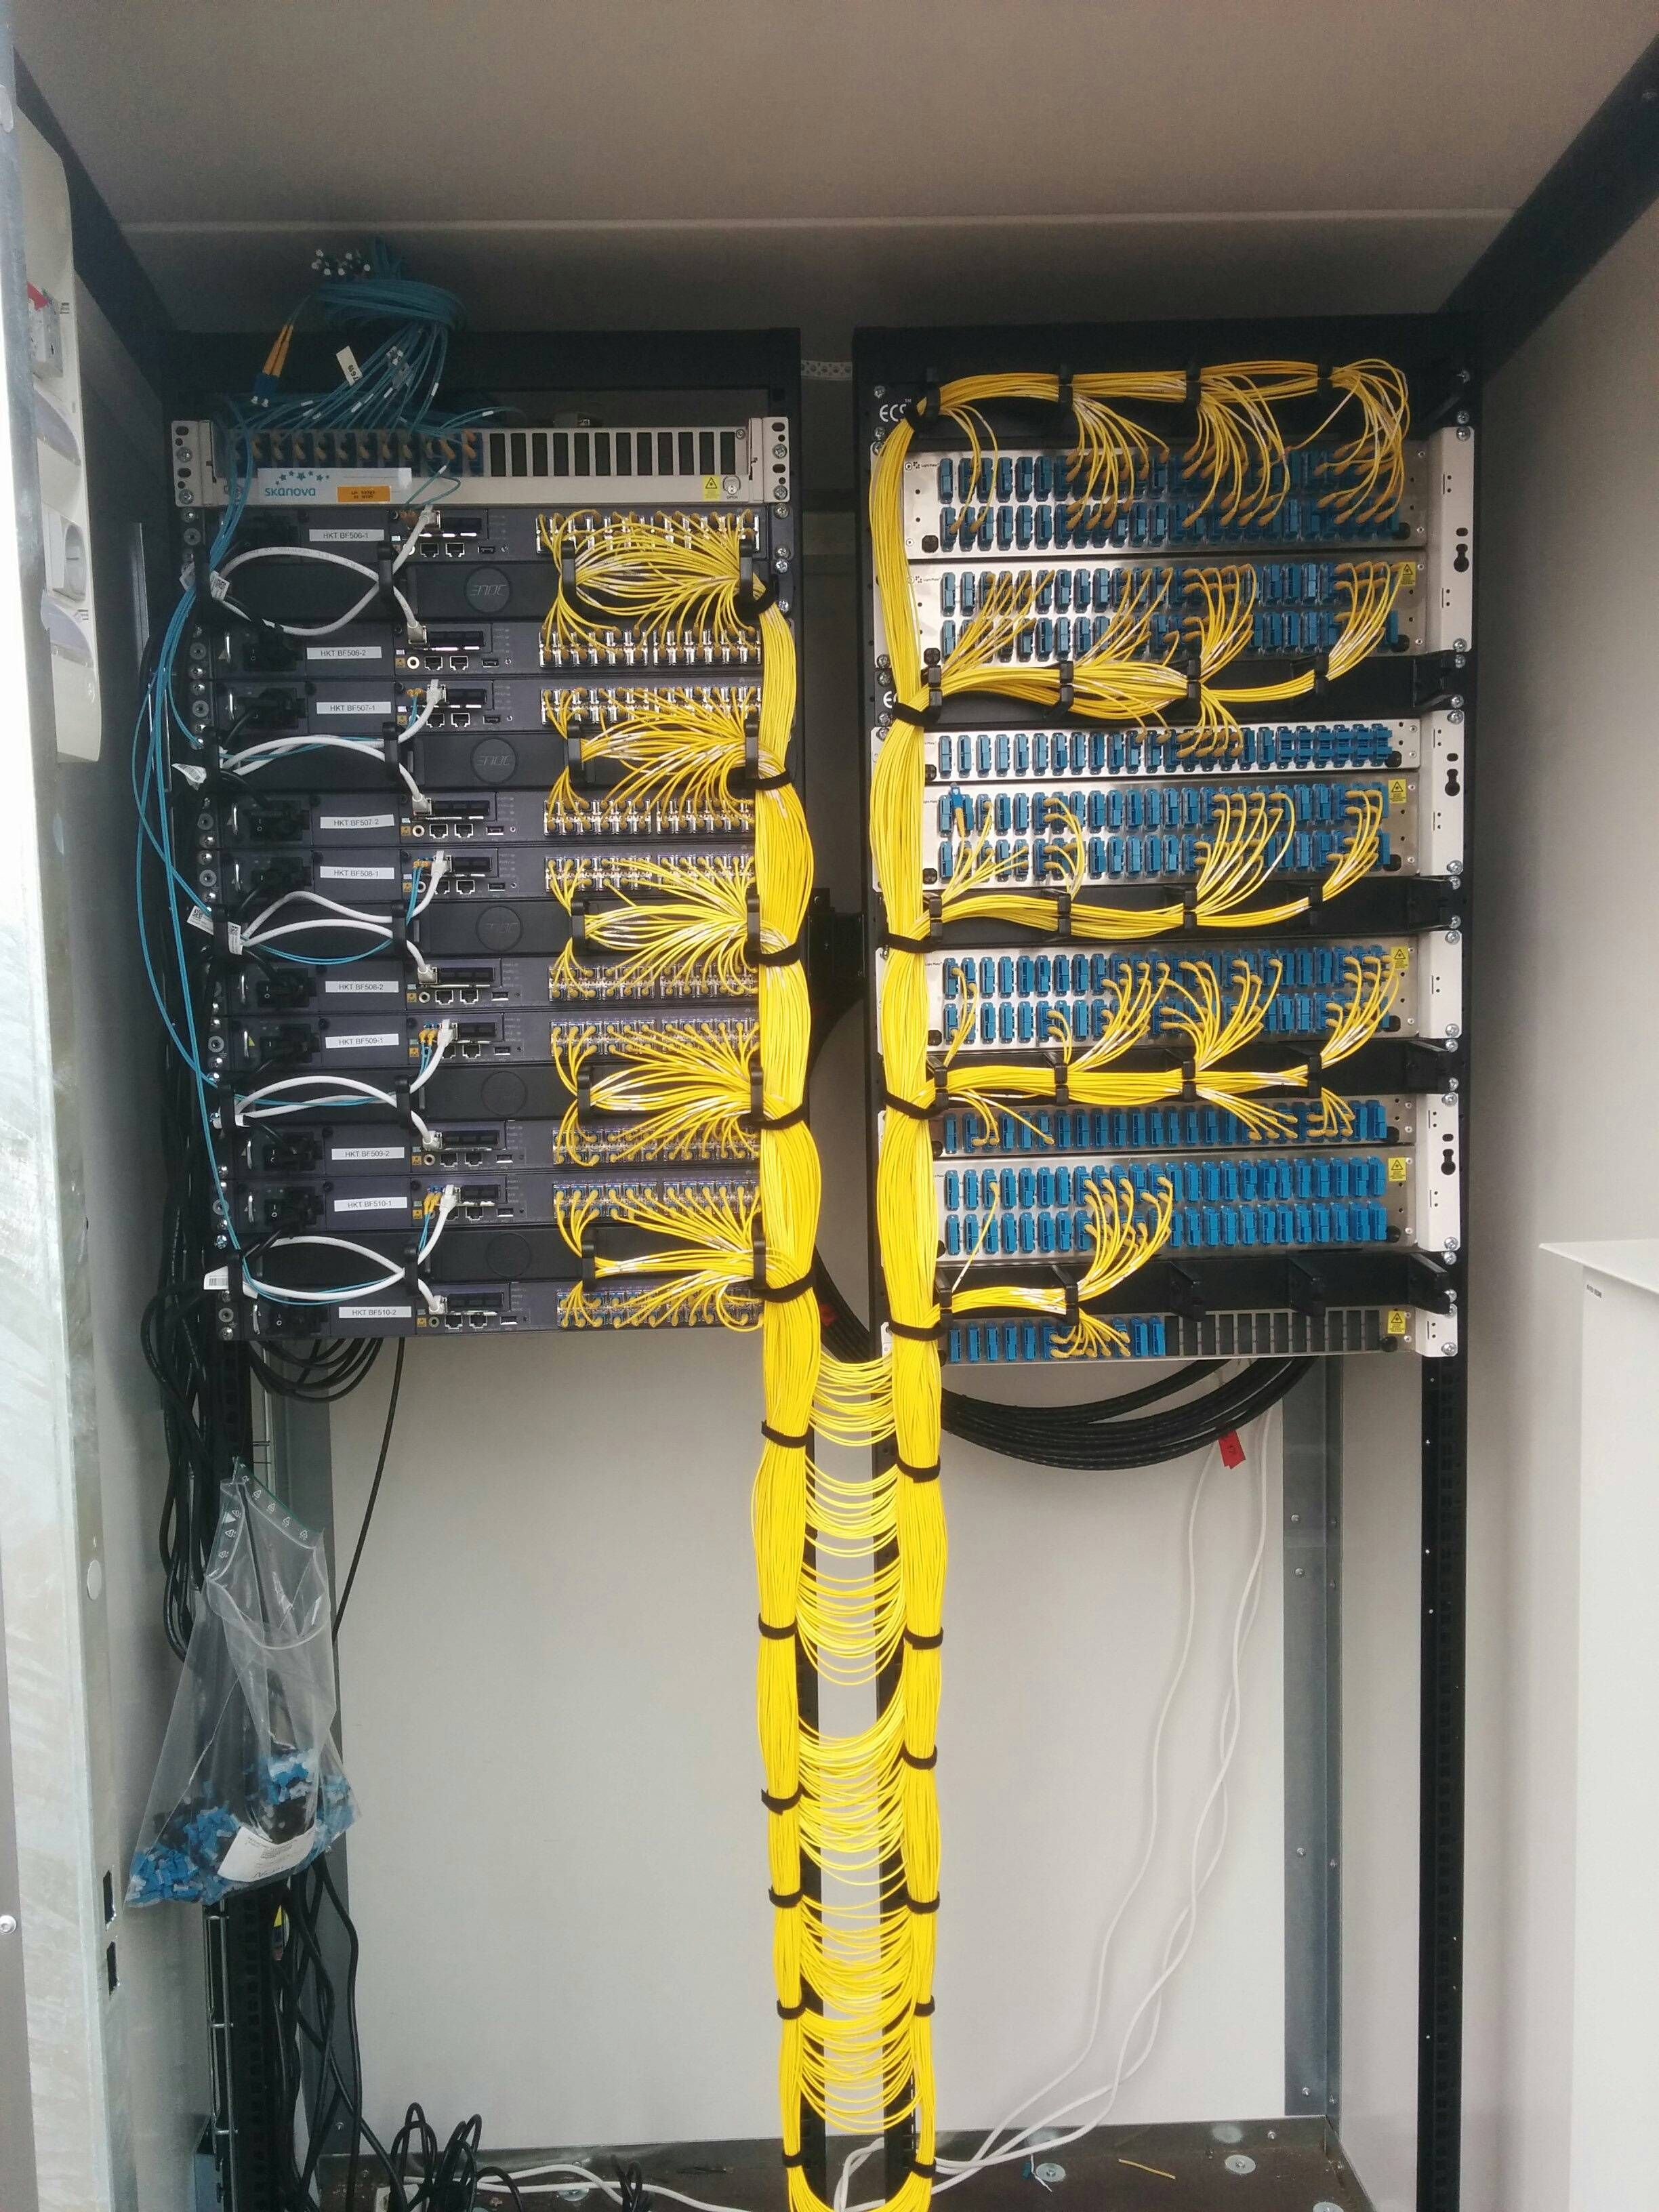 medium resolution of about structured wiring on pinterest home wiring fiber and cable wiring cable management on pinterest cable management cable and